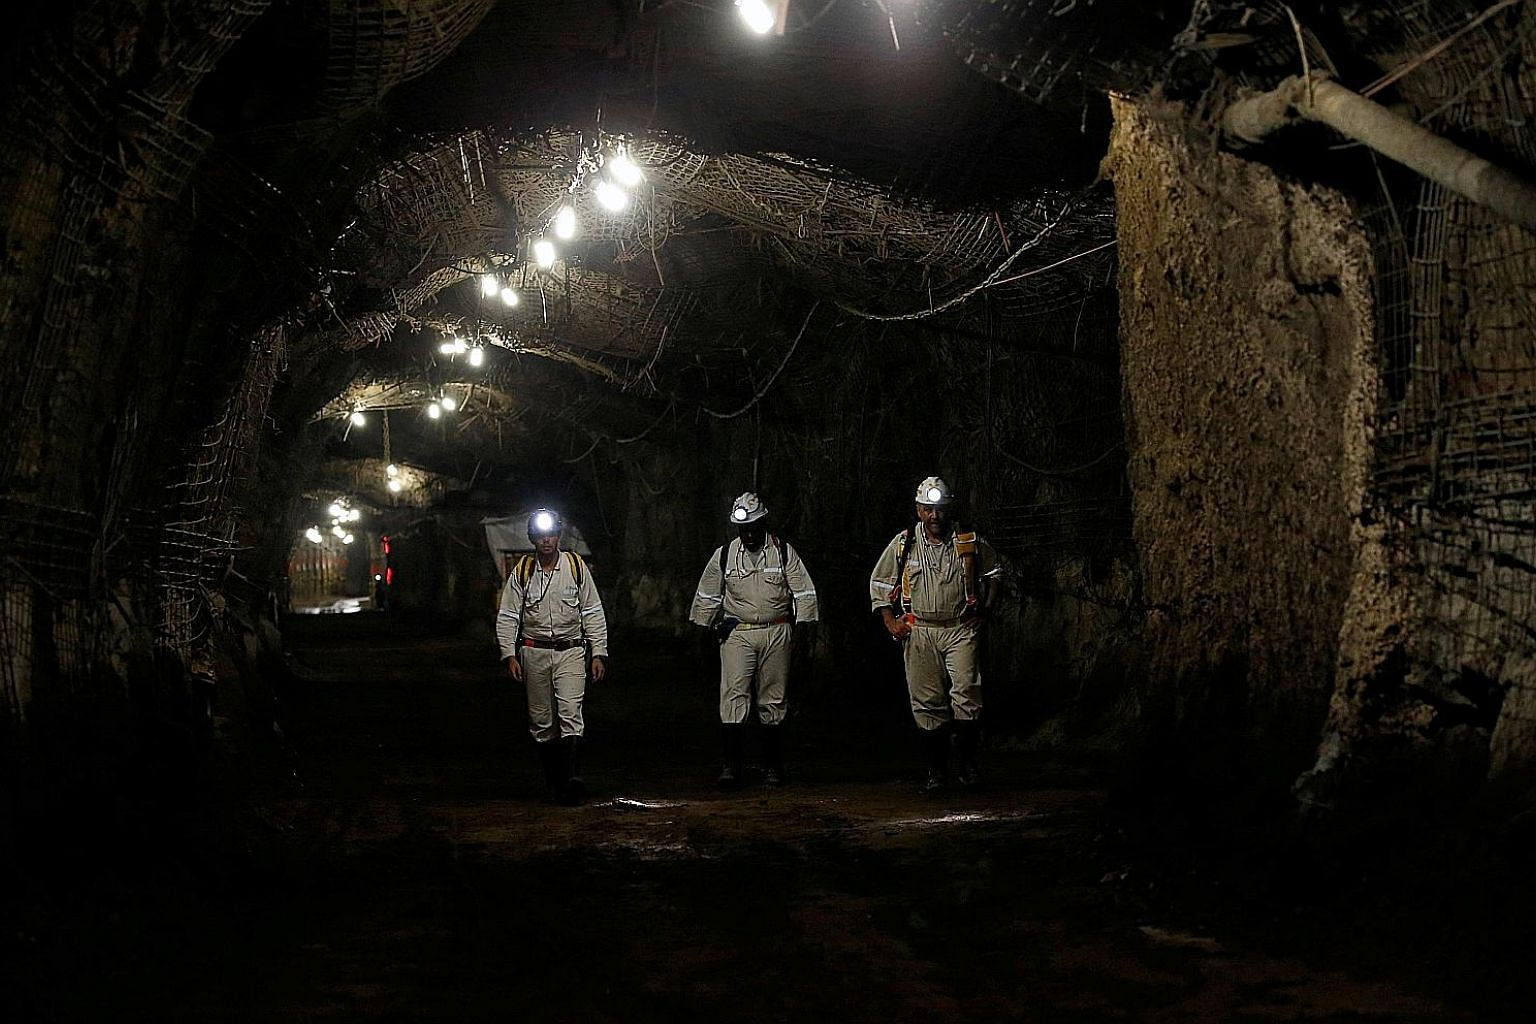 A 2017 file photo of gold-mine workers in South Africa. Worldwide panic over the coronavirus outbreak and a flood of stimulus by central banks have ignited demand for one of humanity's oldest methods of storing wealth.